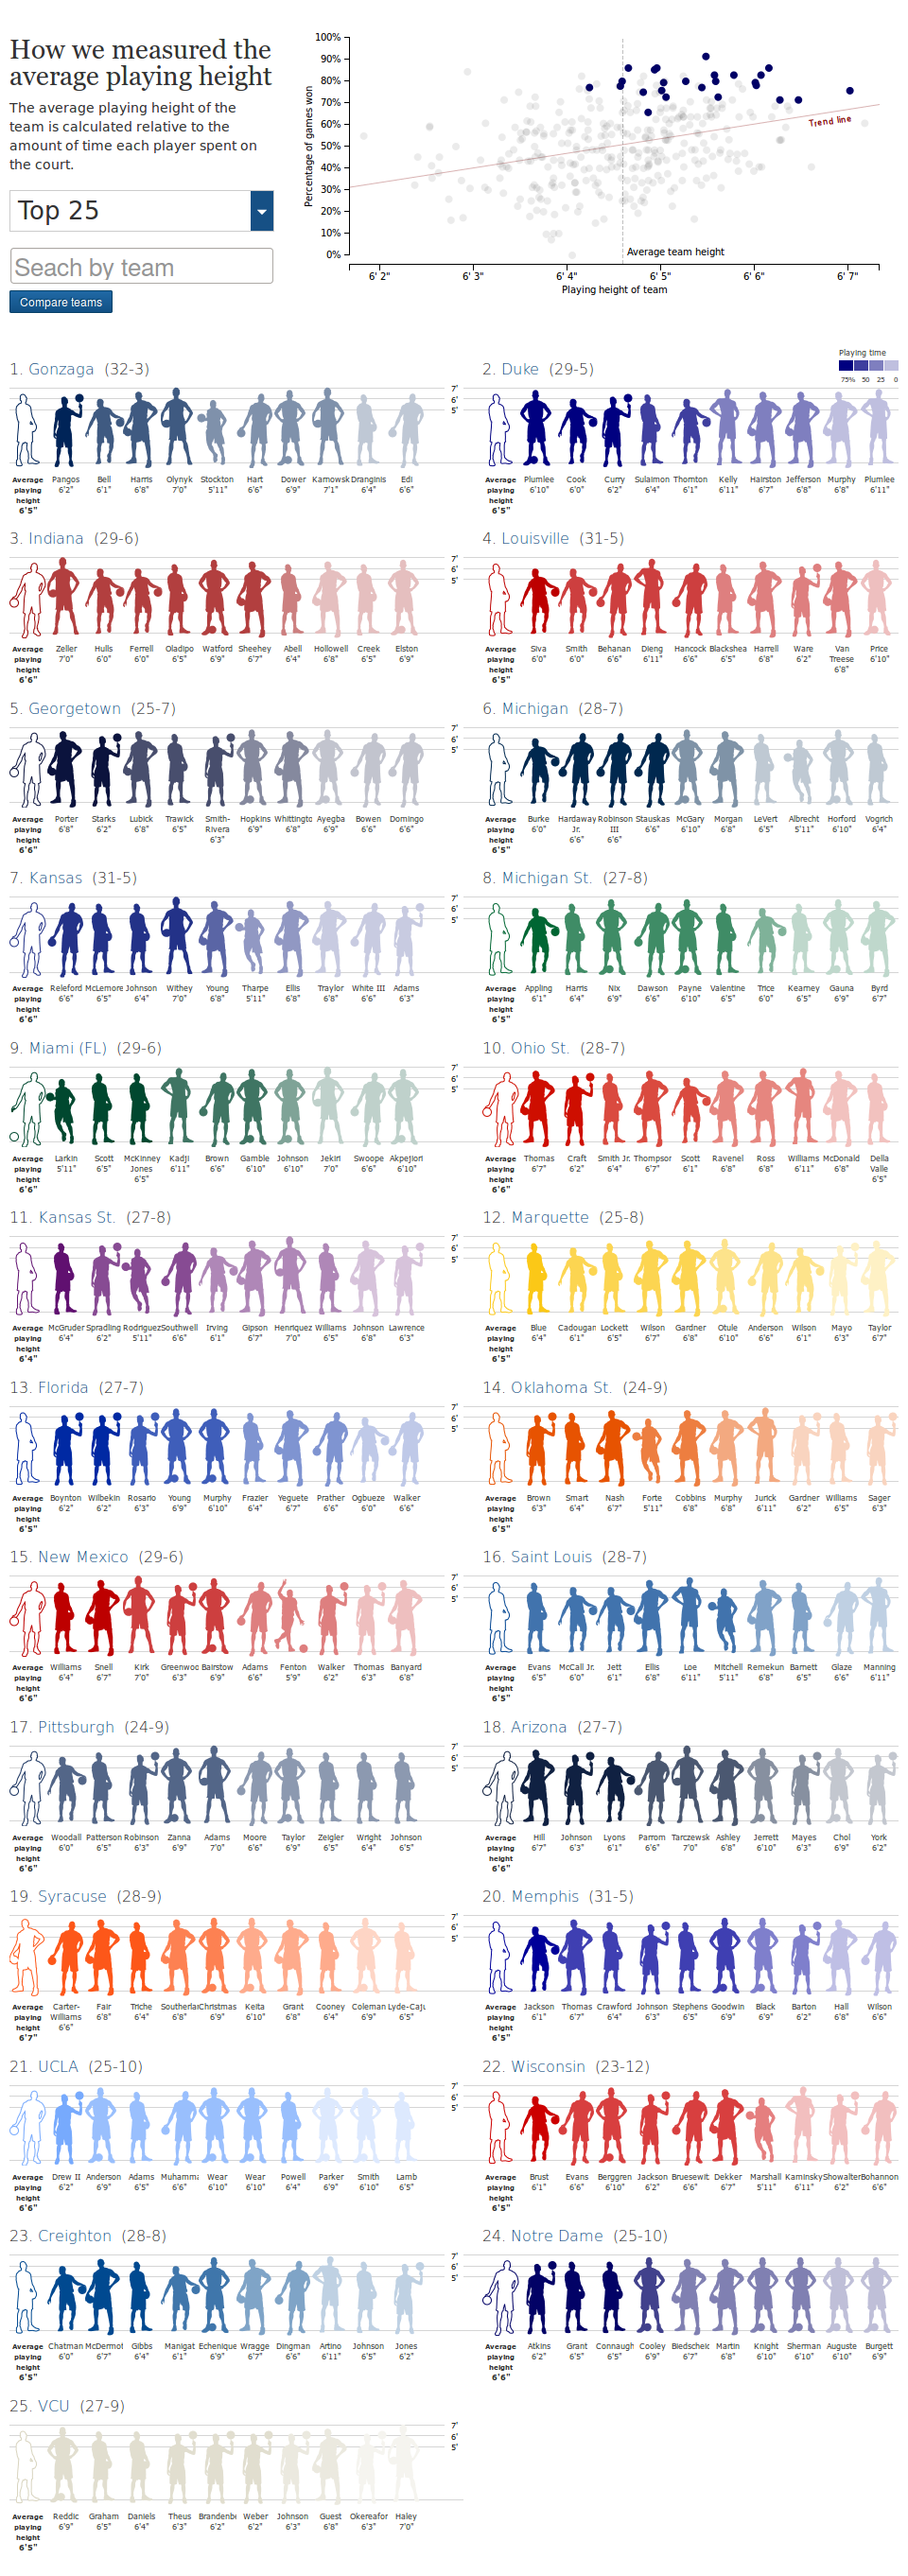 March Madness: do the tallest teams always win the NCAA championship?